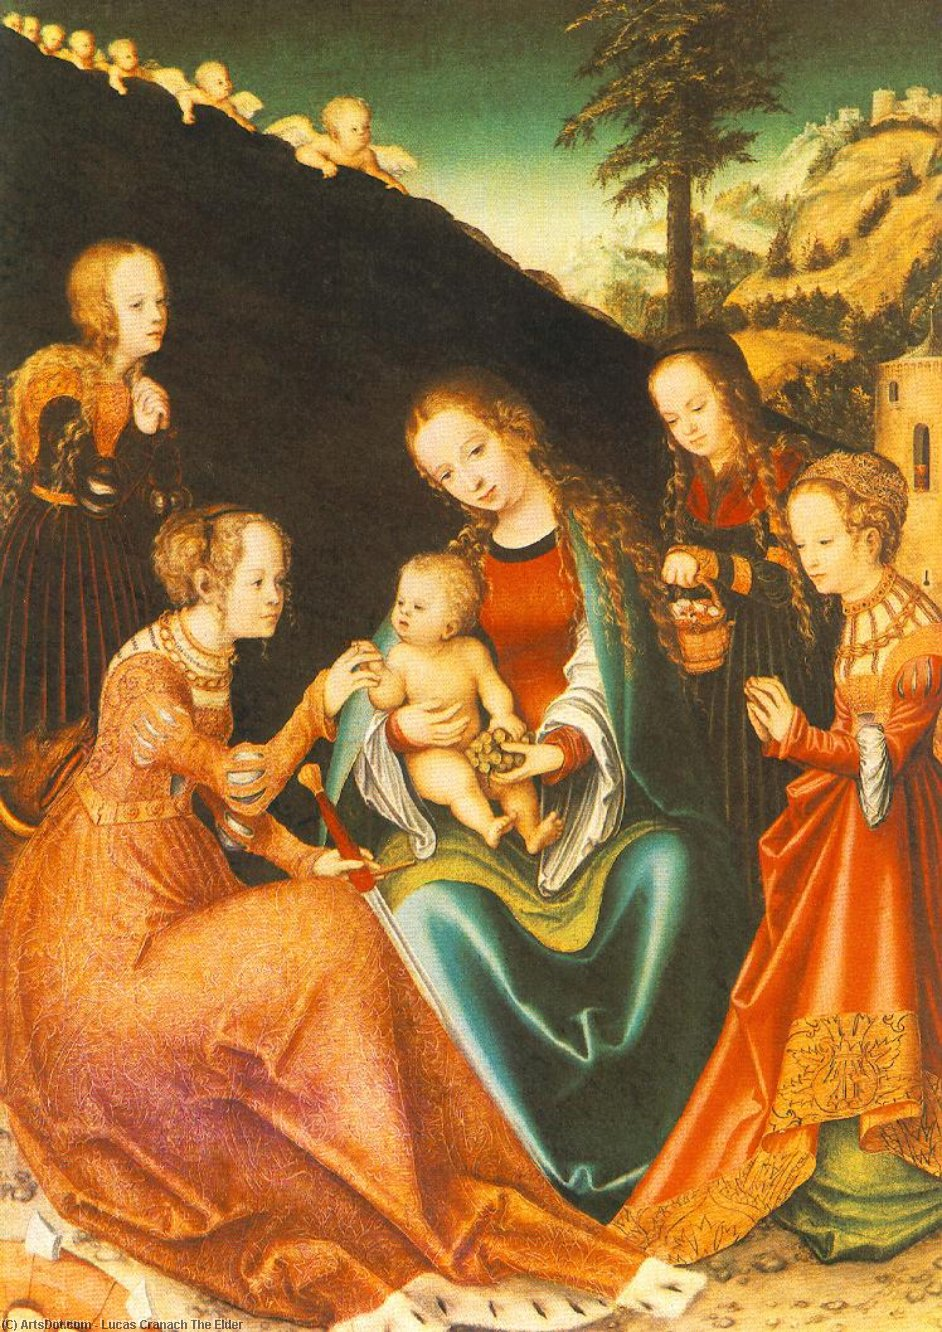 místico matrimonio de san Catherine, 1516 de Lucas Cranach The Elder (1472-1553, Germany)